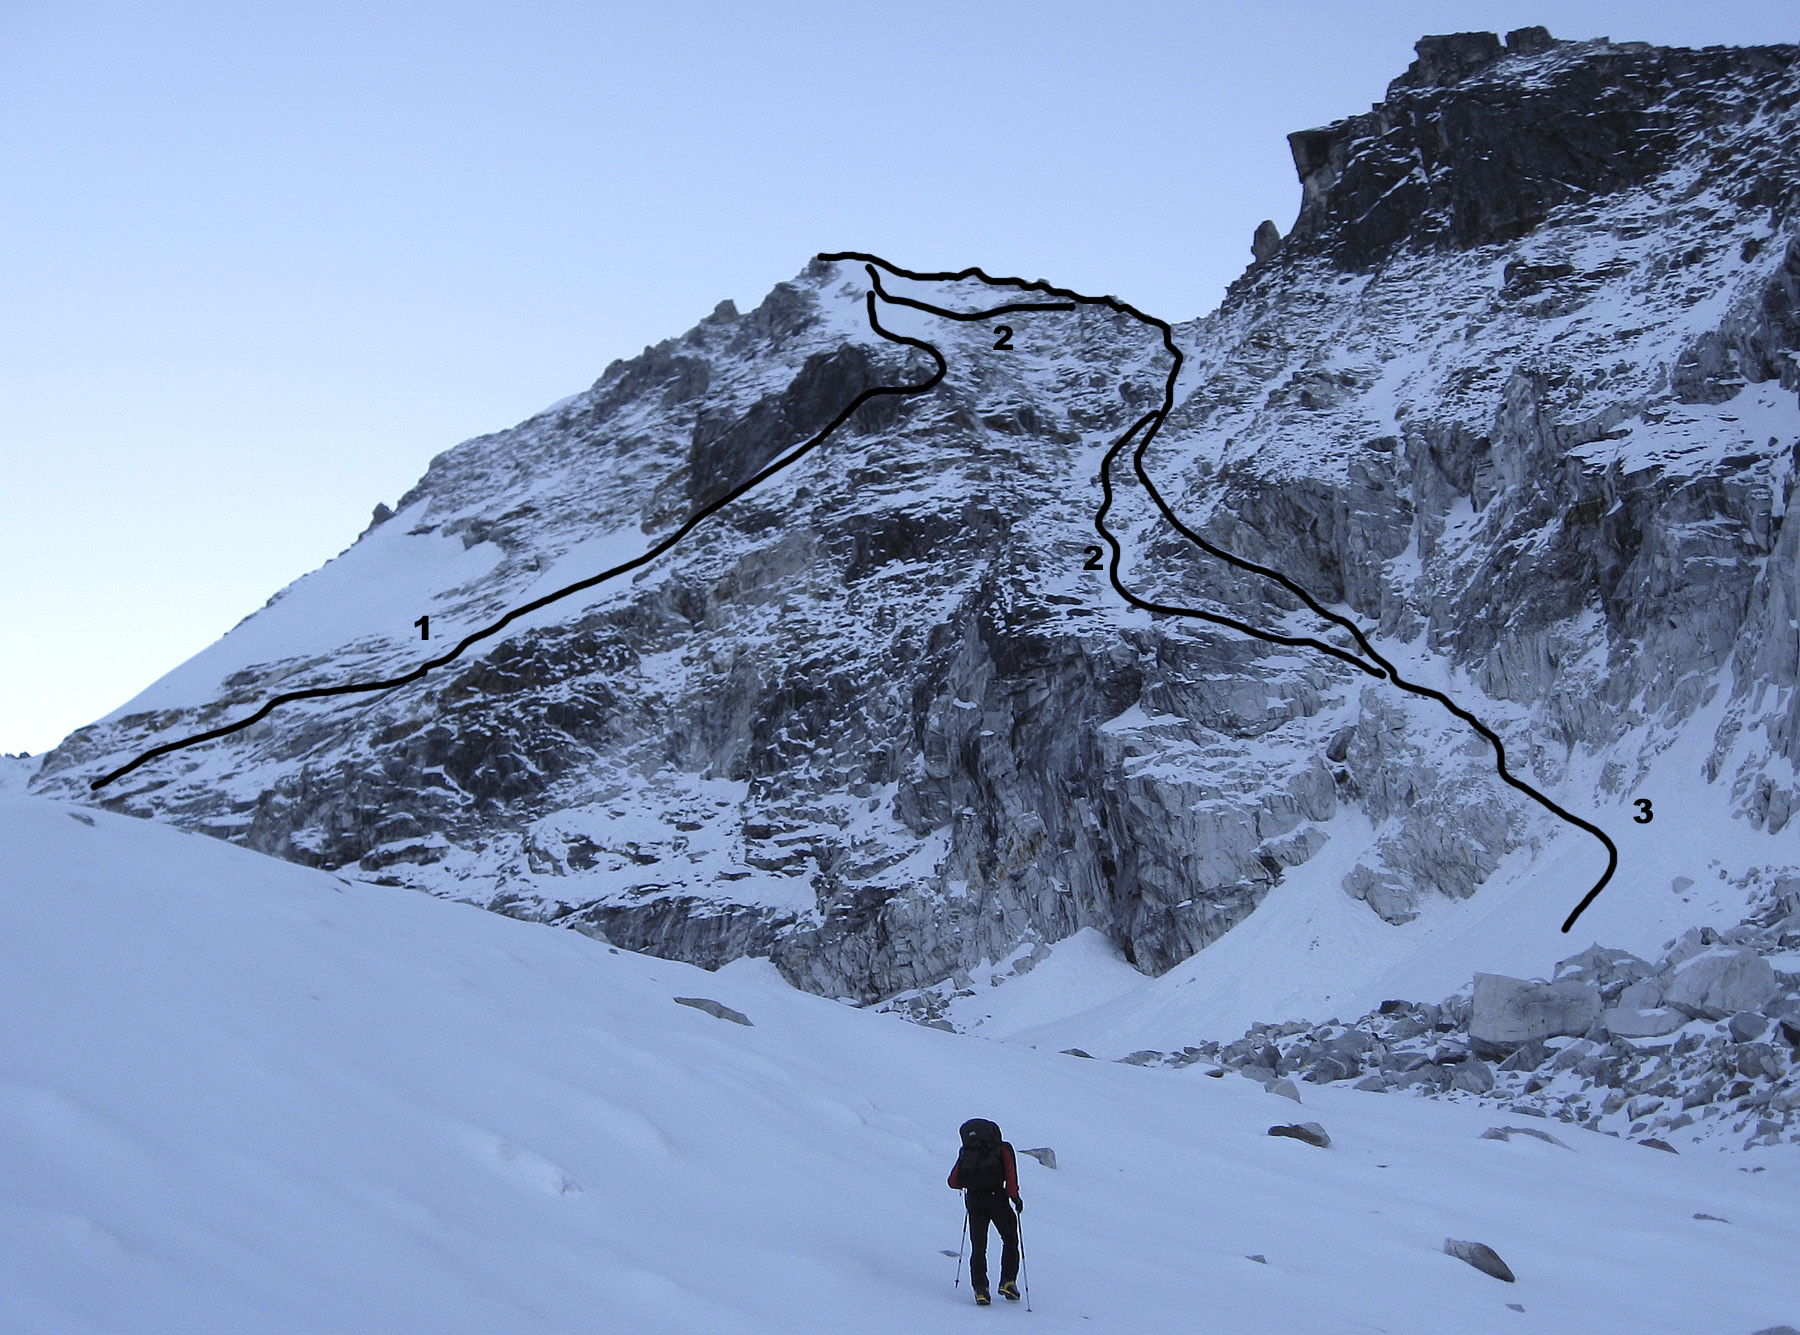 The west face of Lama Lamani. (1) 2005 Bhutia-Clyma-Payne-Rai route. (2) Cohen-Swienton. (3) Hamilton-Kennedy. The unclimbed south summit lies off picture to the right. Paul Swienton